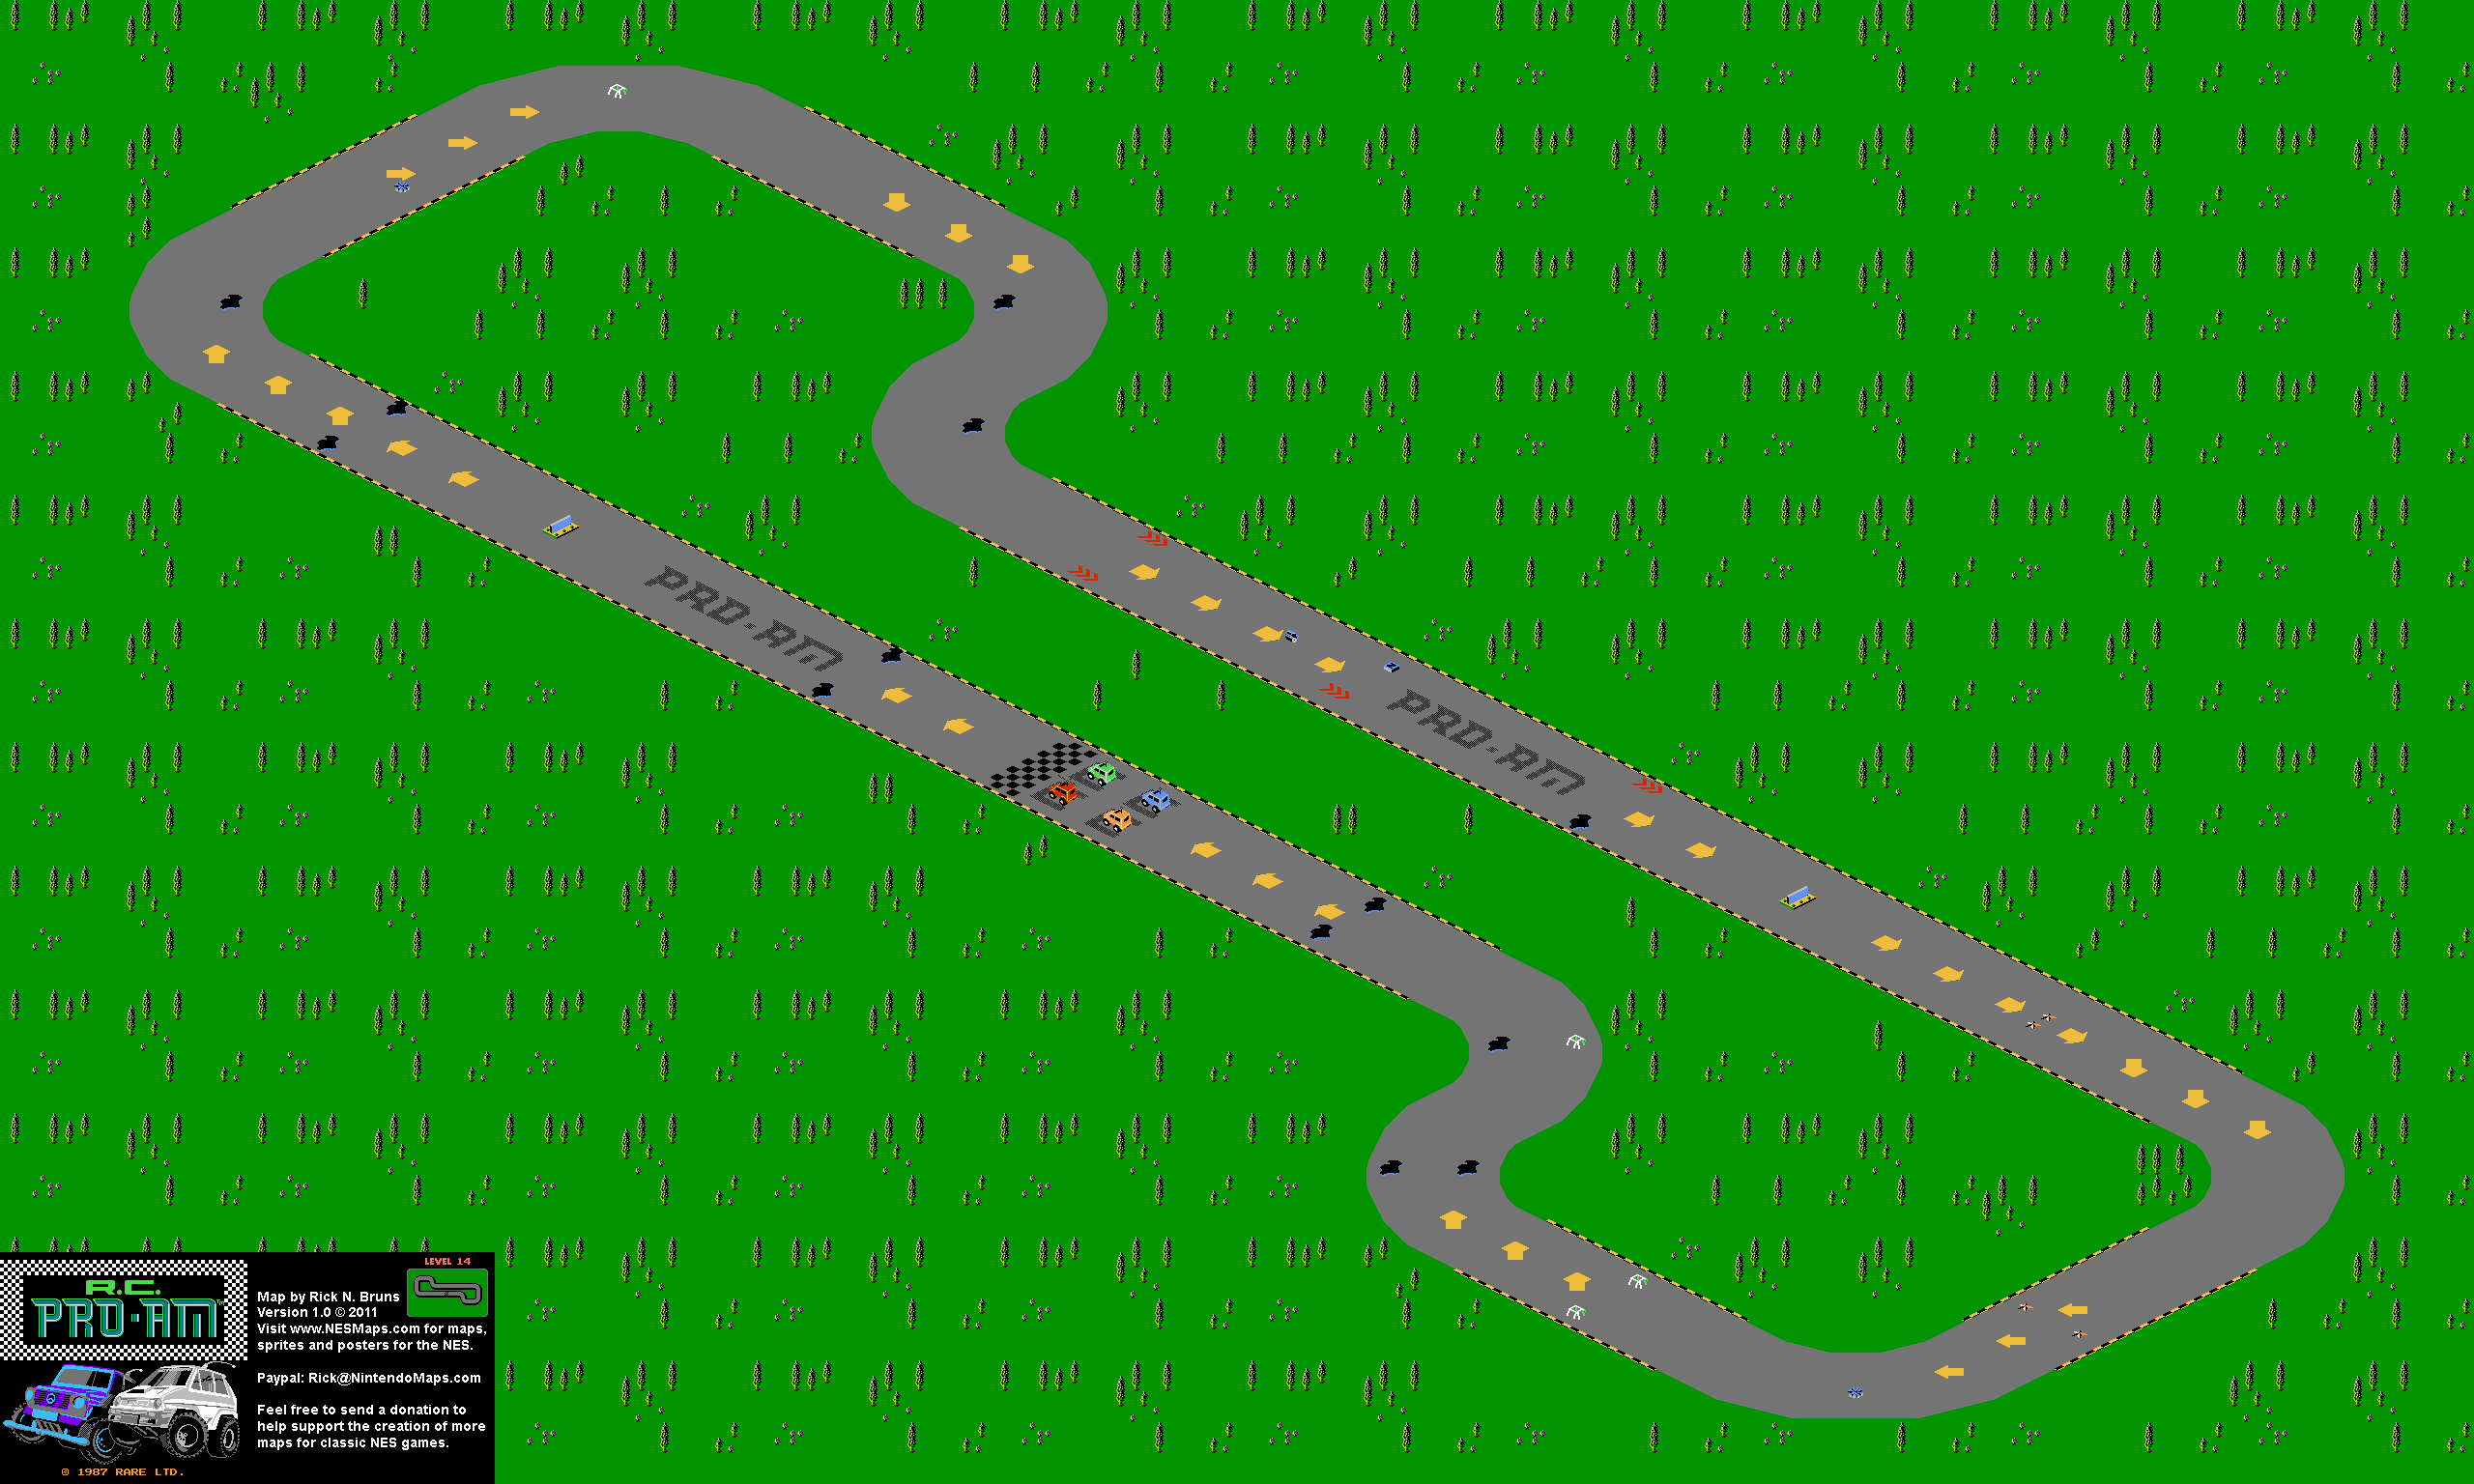 Level 14 Map (PNG)